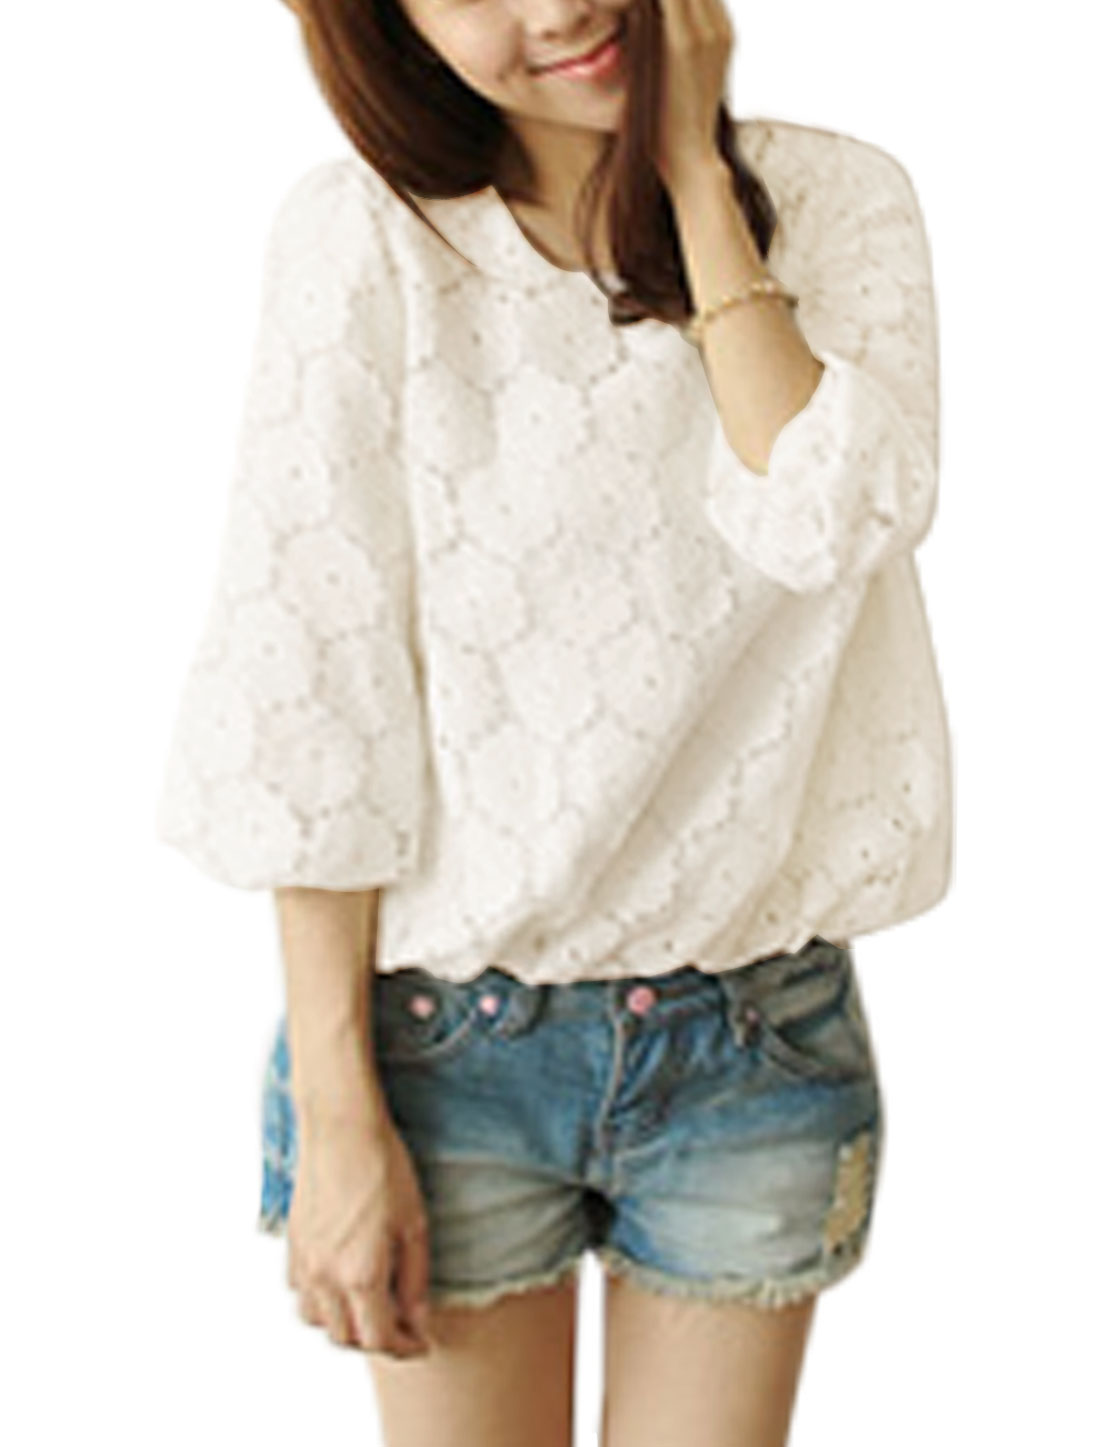 Woman Floral Design Round Neck 3/4 Sleeves Lace Blouse White XS